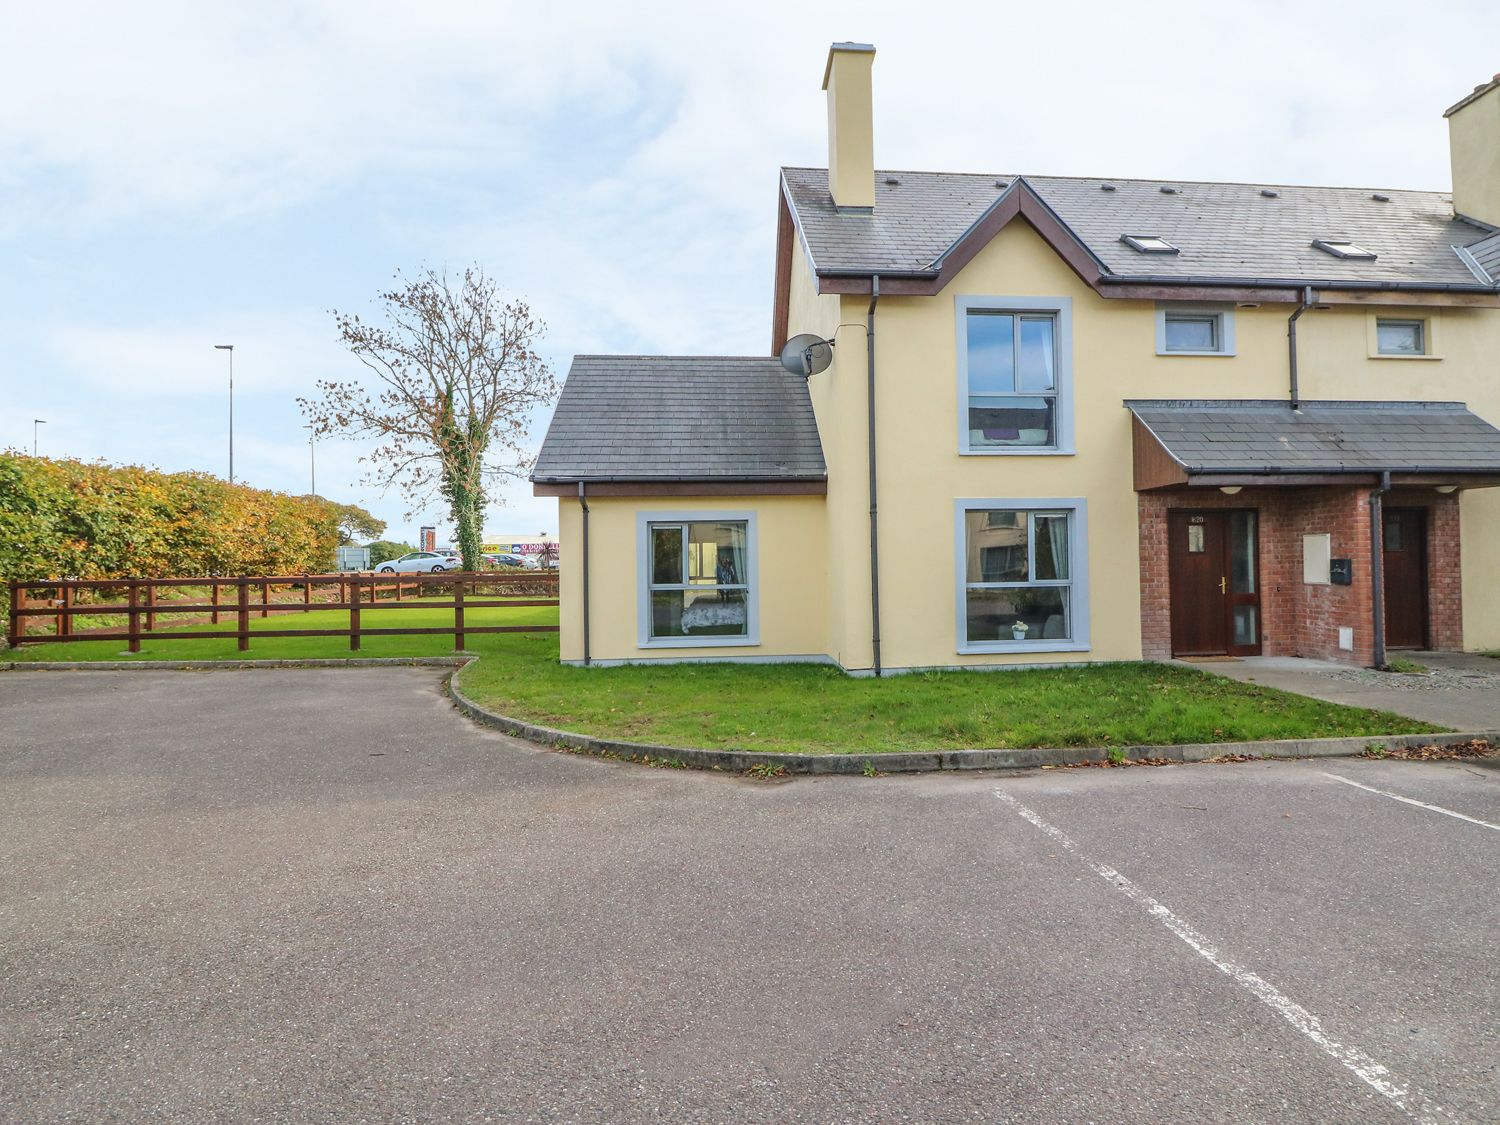 1620 Park Court - County Kerry - 991276 - photo 1